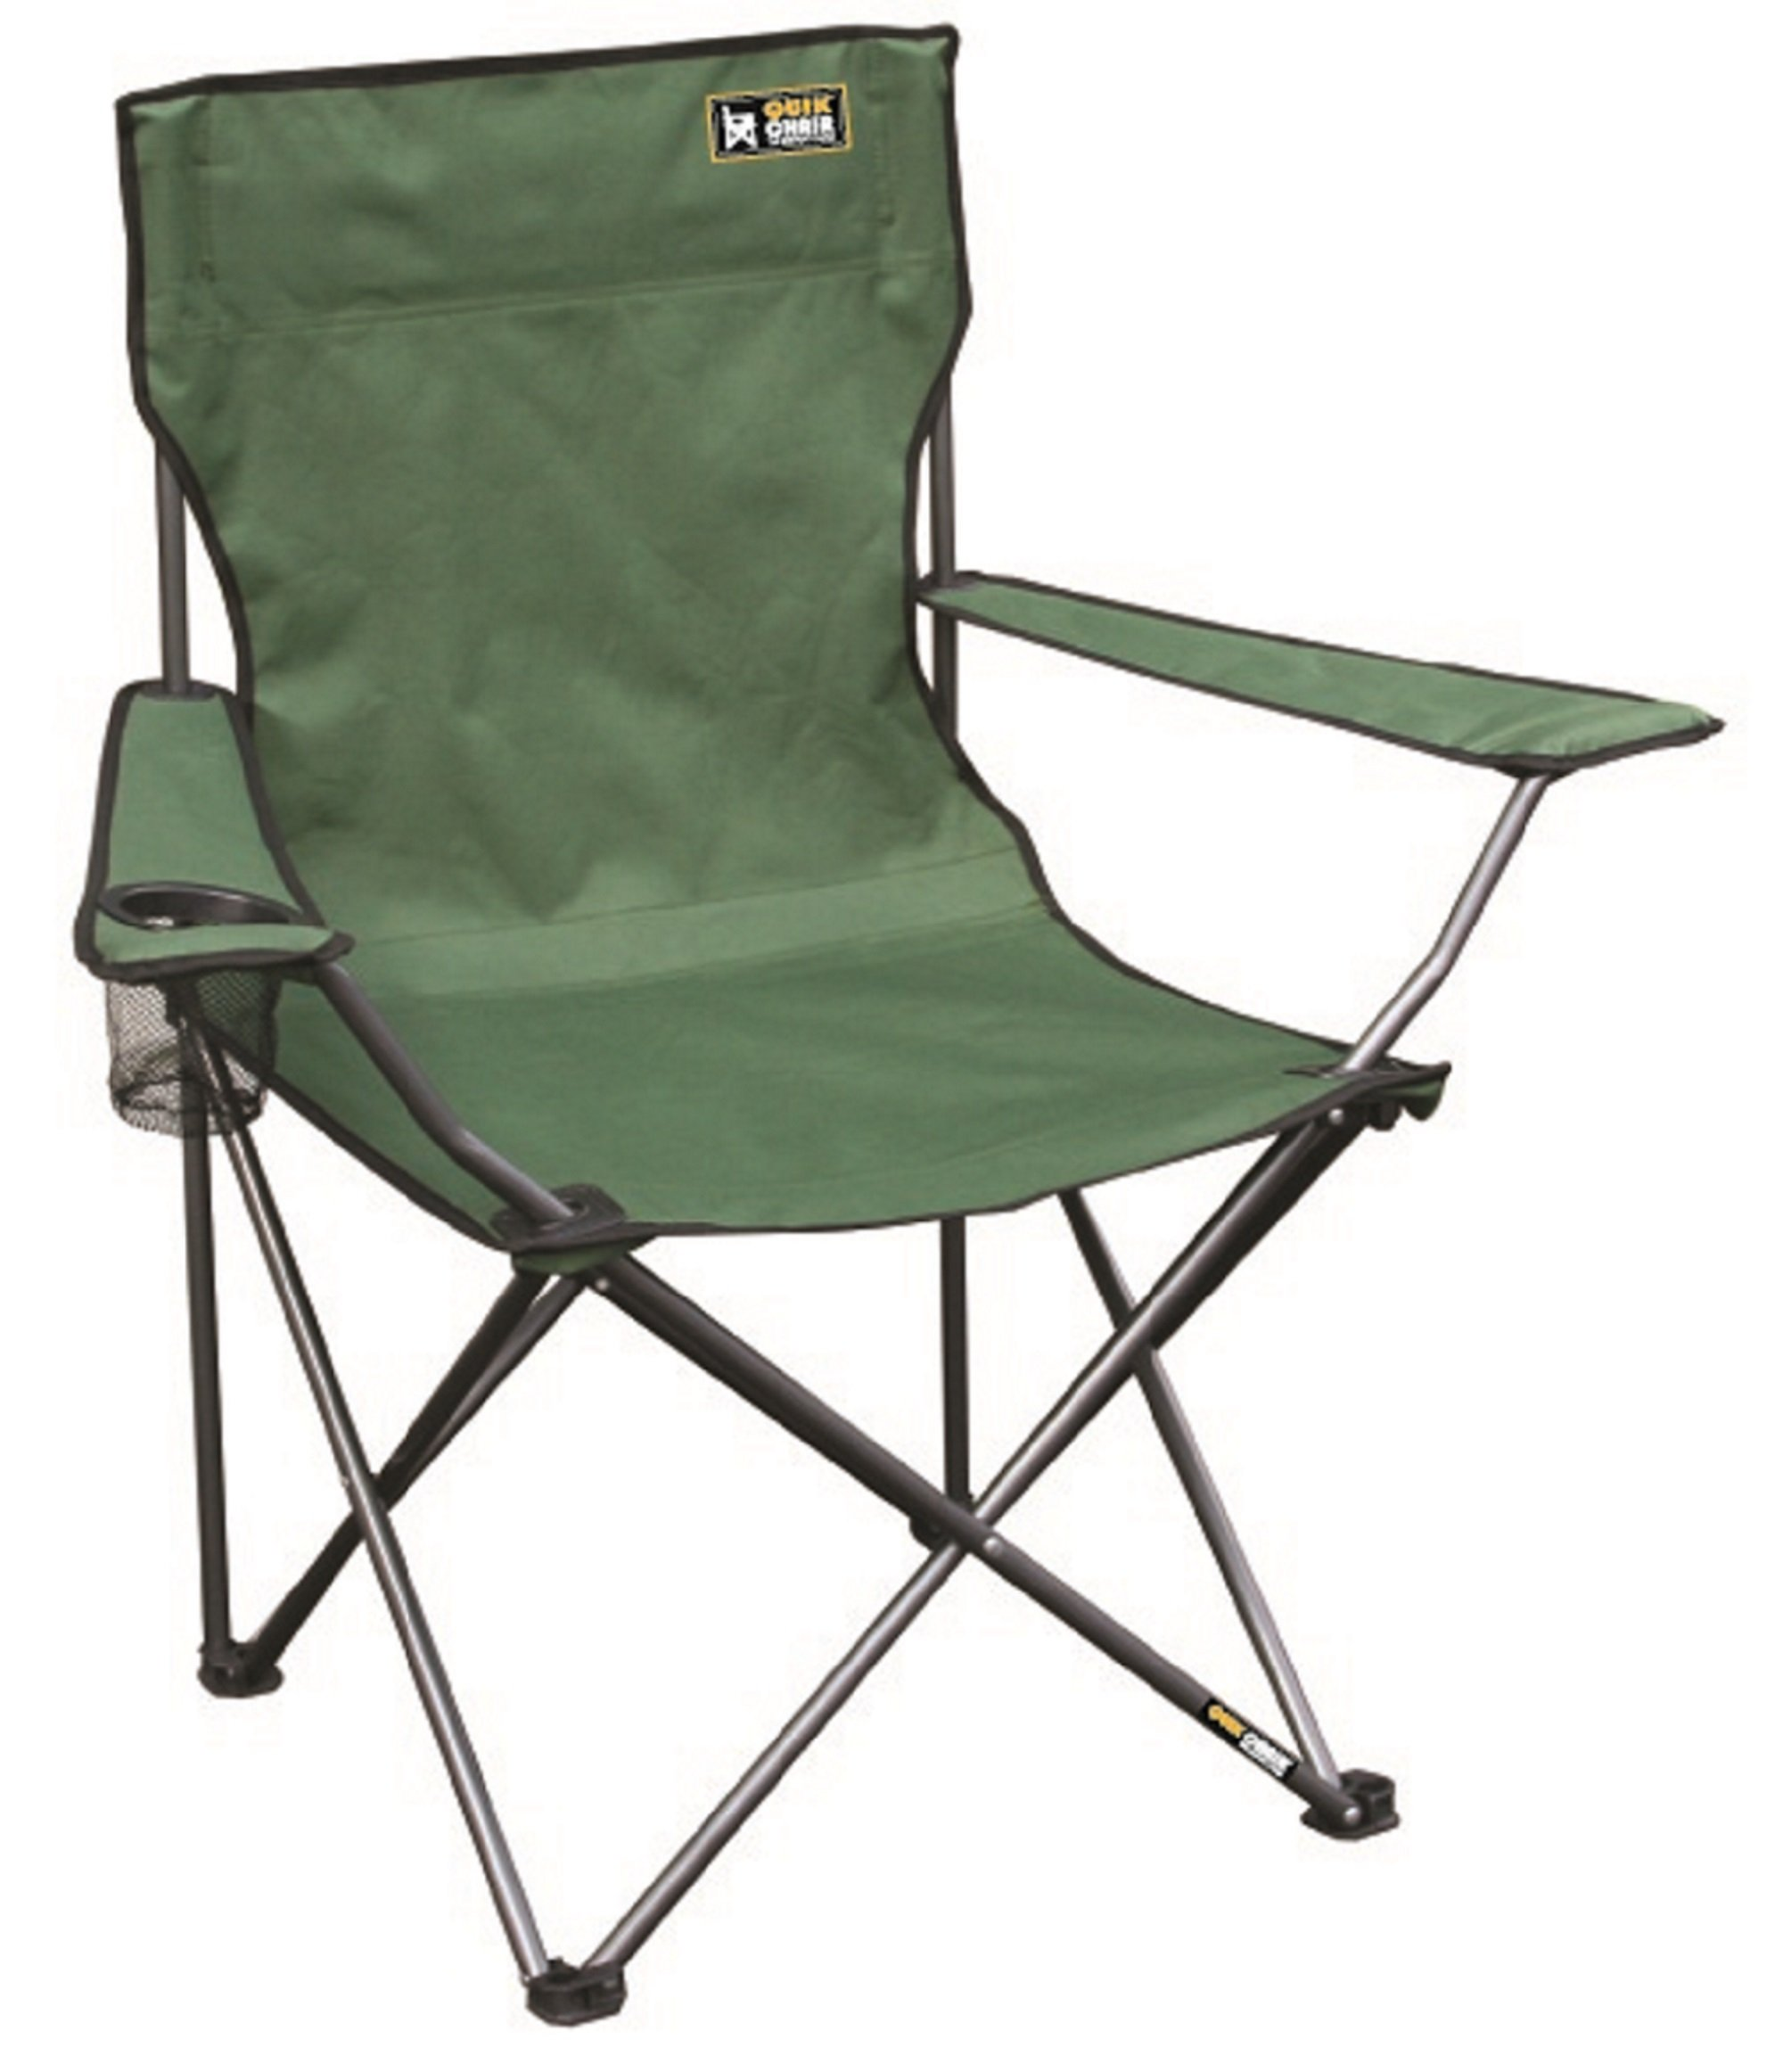 Quik Chair Portable Folding Chair with Arm Rest Cup Holder and Carrying and Storage Bag  sc 1 st  Amazon.com & Tailgate Chairs: Amazon.com